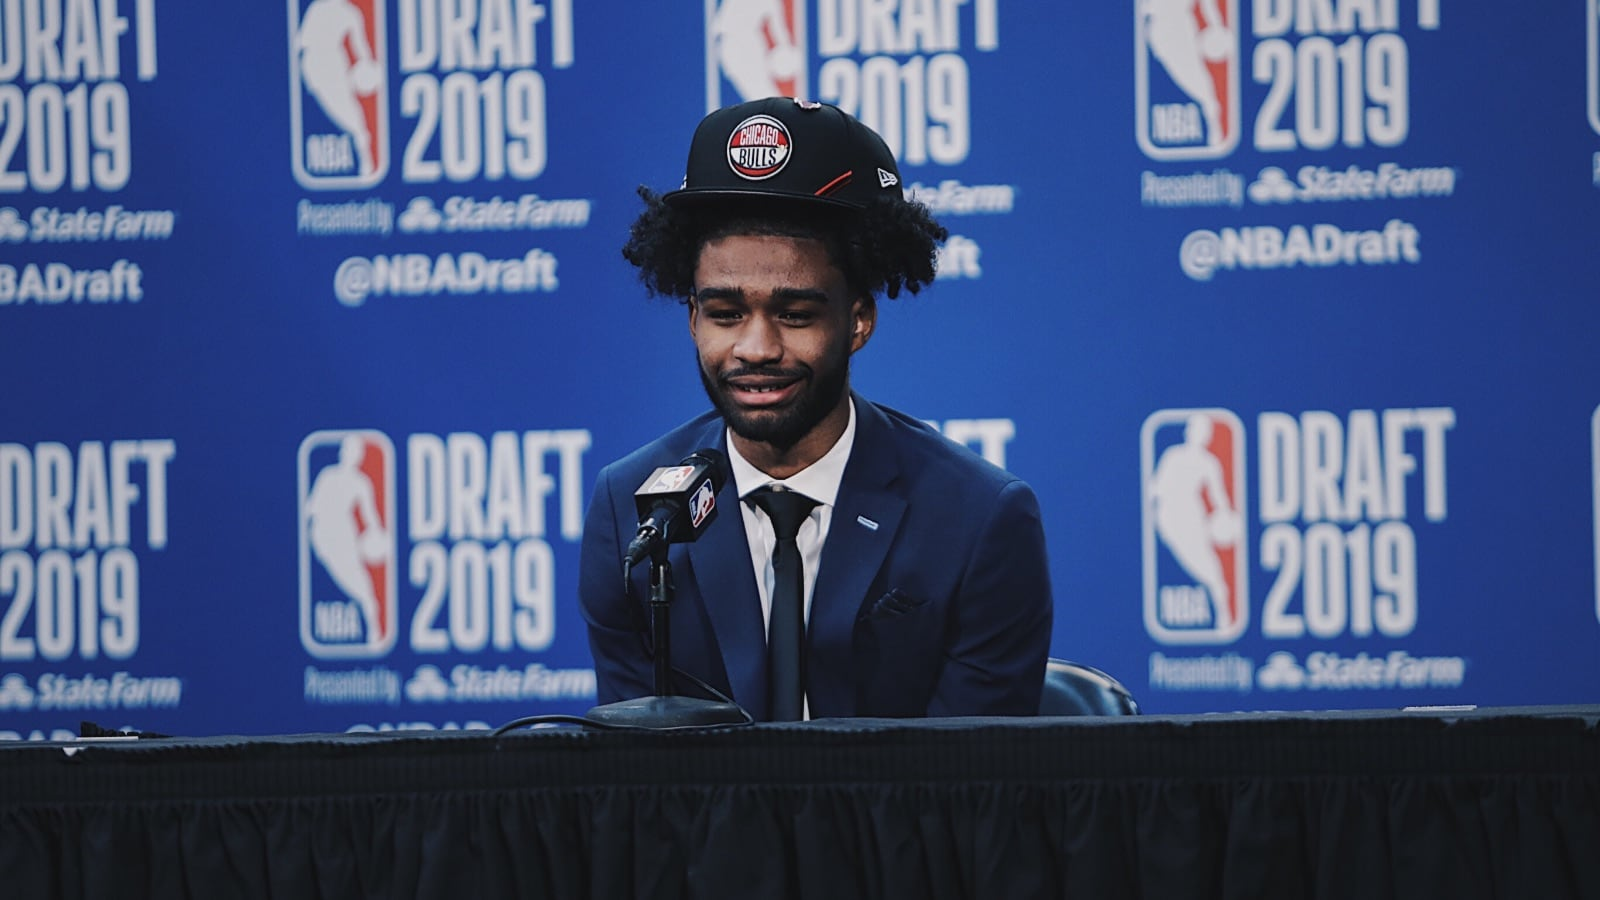 Coby White meets with the media after being selected 7th by the Chicago Bulls